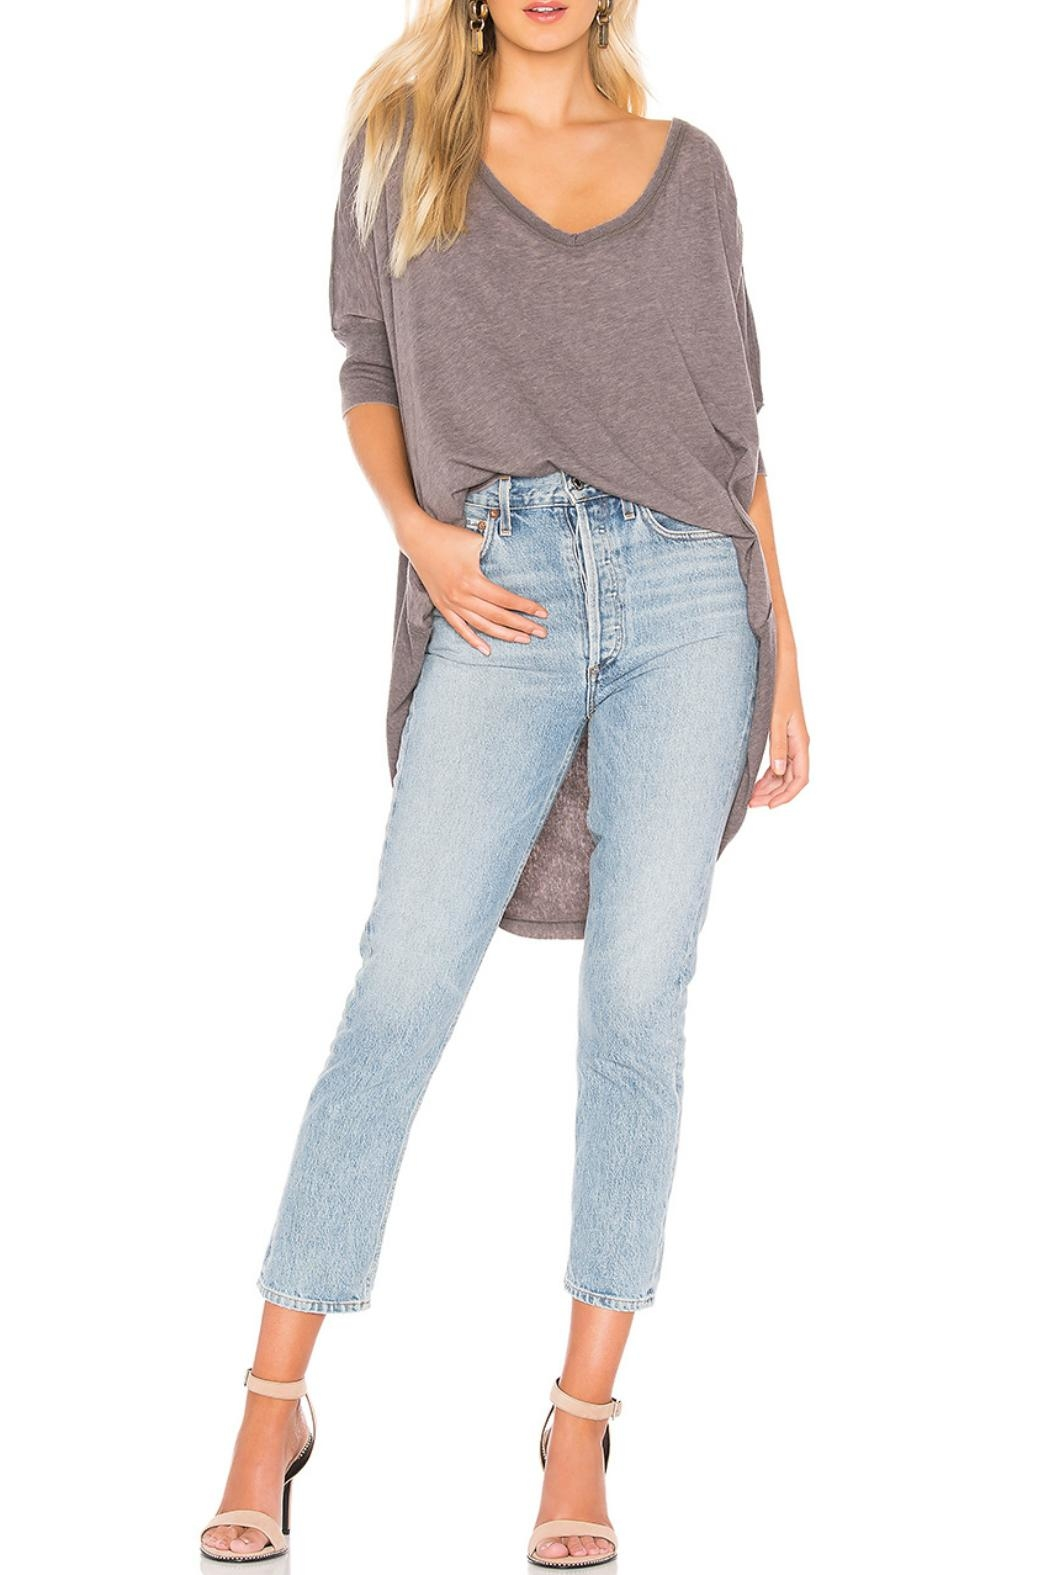 Free People Catch Waves Tee - Front Cropped Image